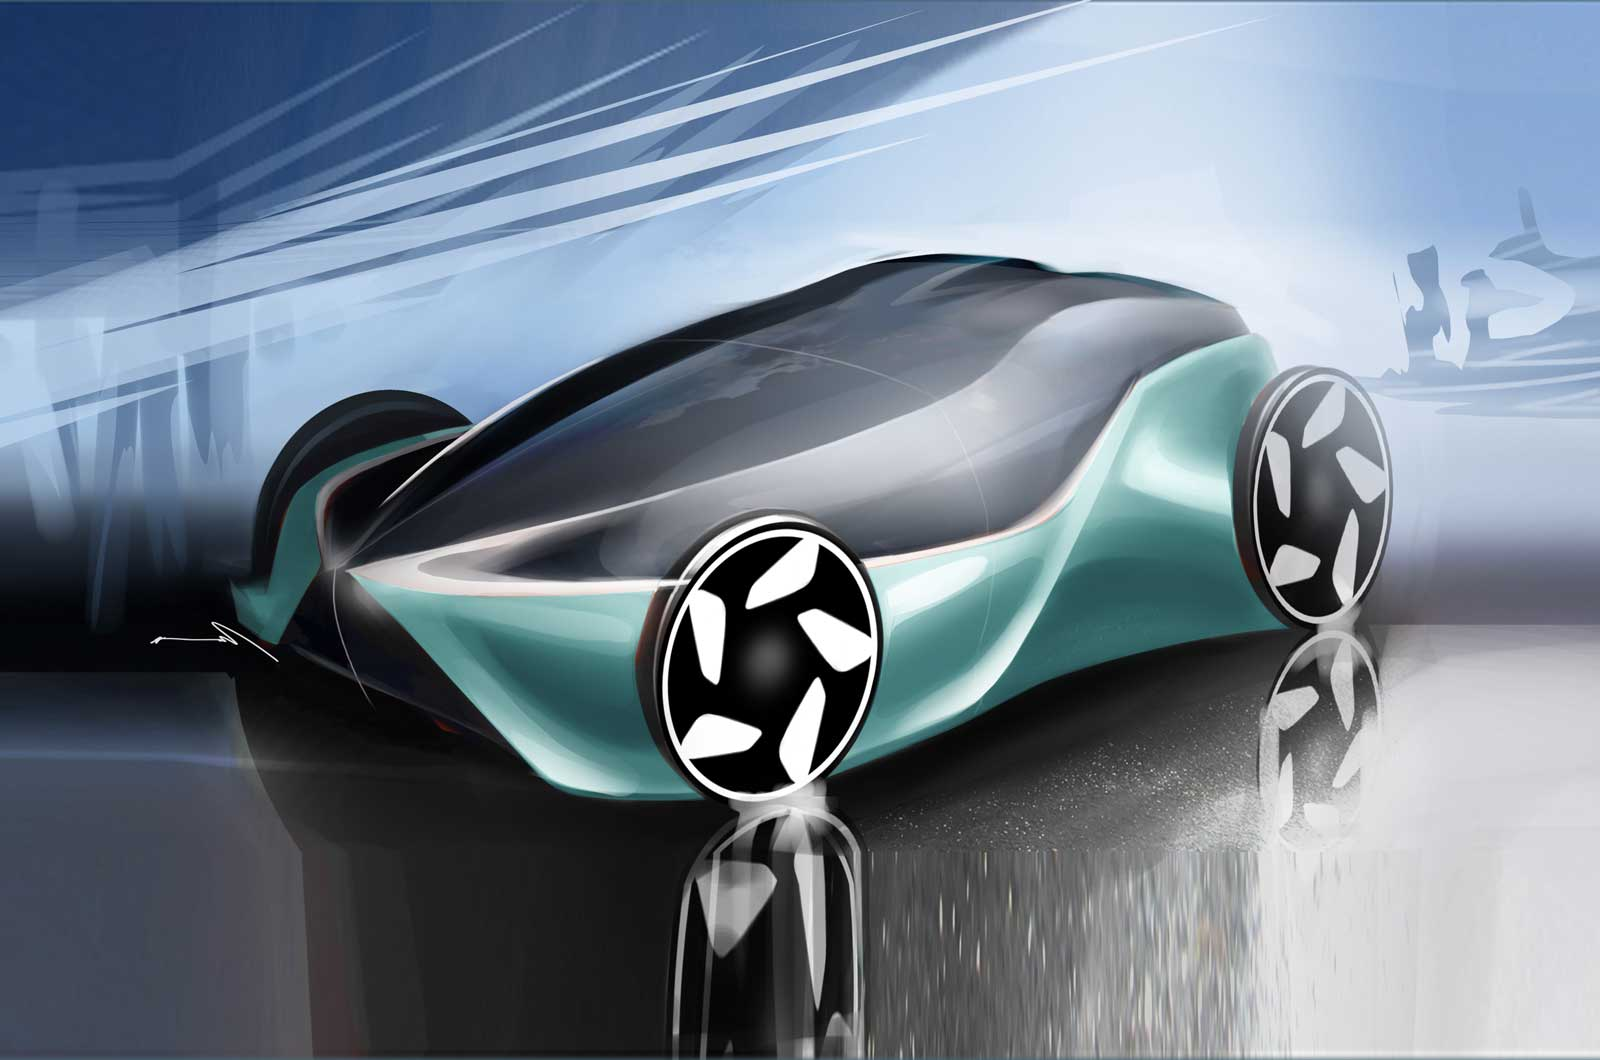 Toyota Company Latest Models >> Toyota Ev Company Launched To Develop Electric Cars Autocar